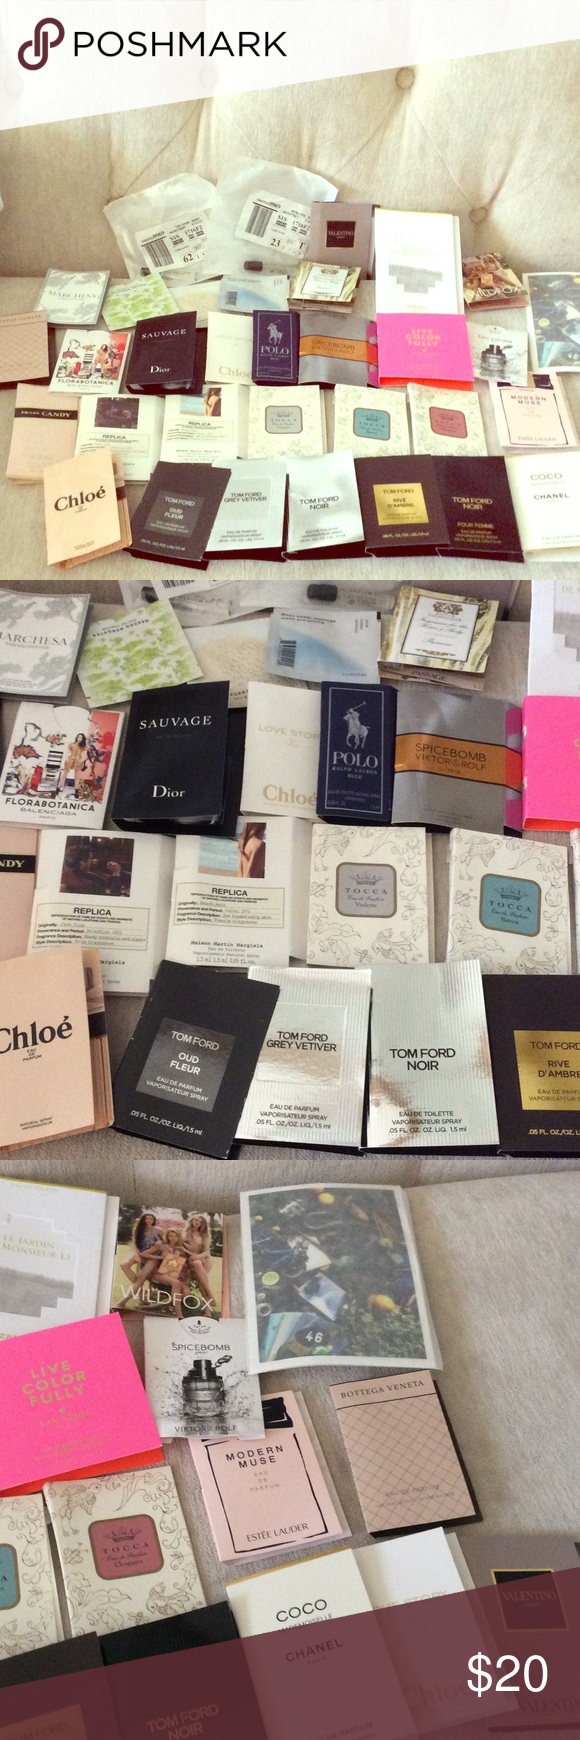 Lot of 33 perfume samples, high end Replica - beach walk, jazz club, Tom Ford - oud fleur, GREY Verviers, noir, d'ambre, Chanel - coco, Chloe - love story, Tocca - violette, Bianca, cleopatra, Kate Spade - live color fully, Estée Lauder - modern muse, Jo Malone - peony and blush suede, Dior - sausage, Ralph Lauren Polo- blue, SpiceBomb, Marchesa, and more CHANEL Makeup